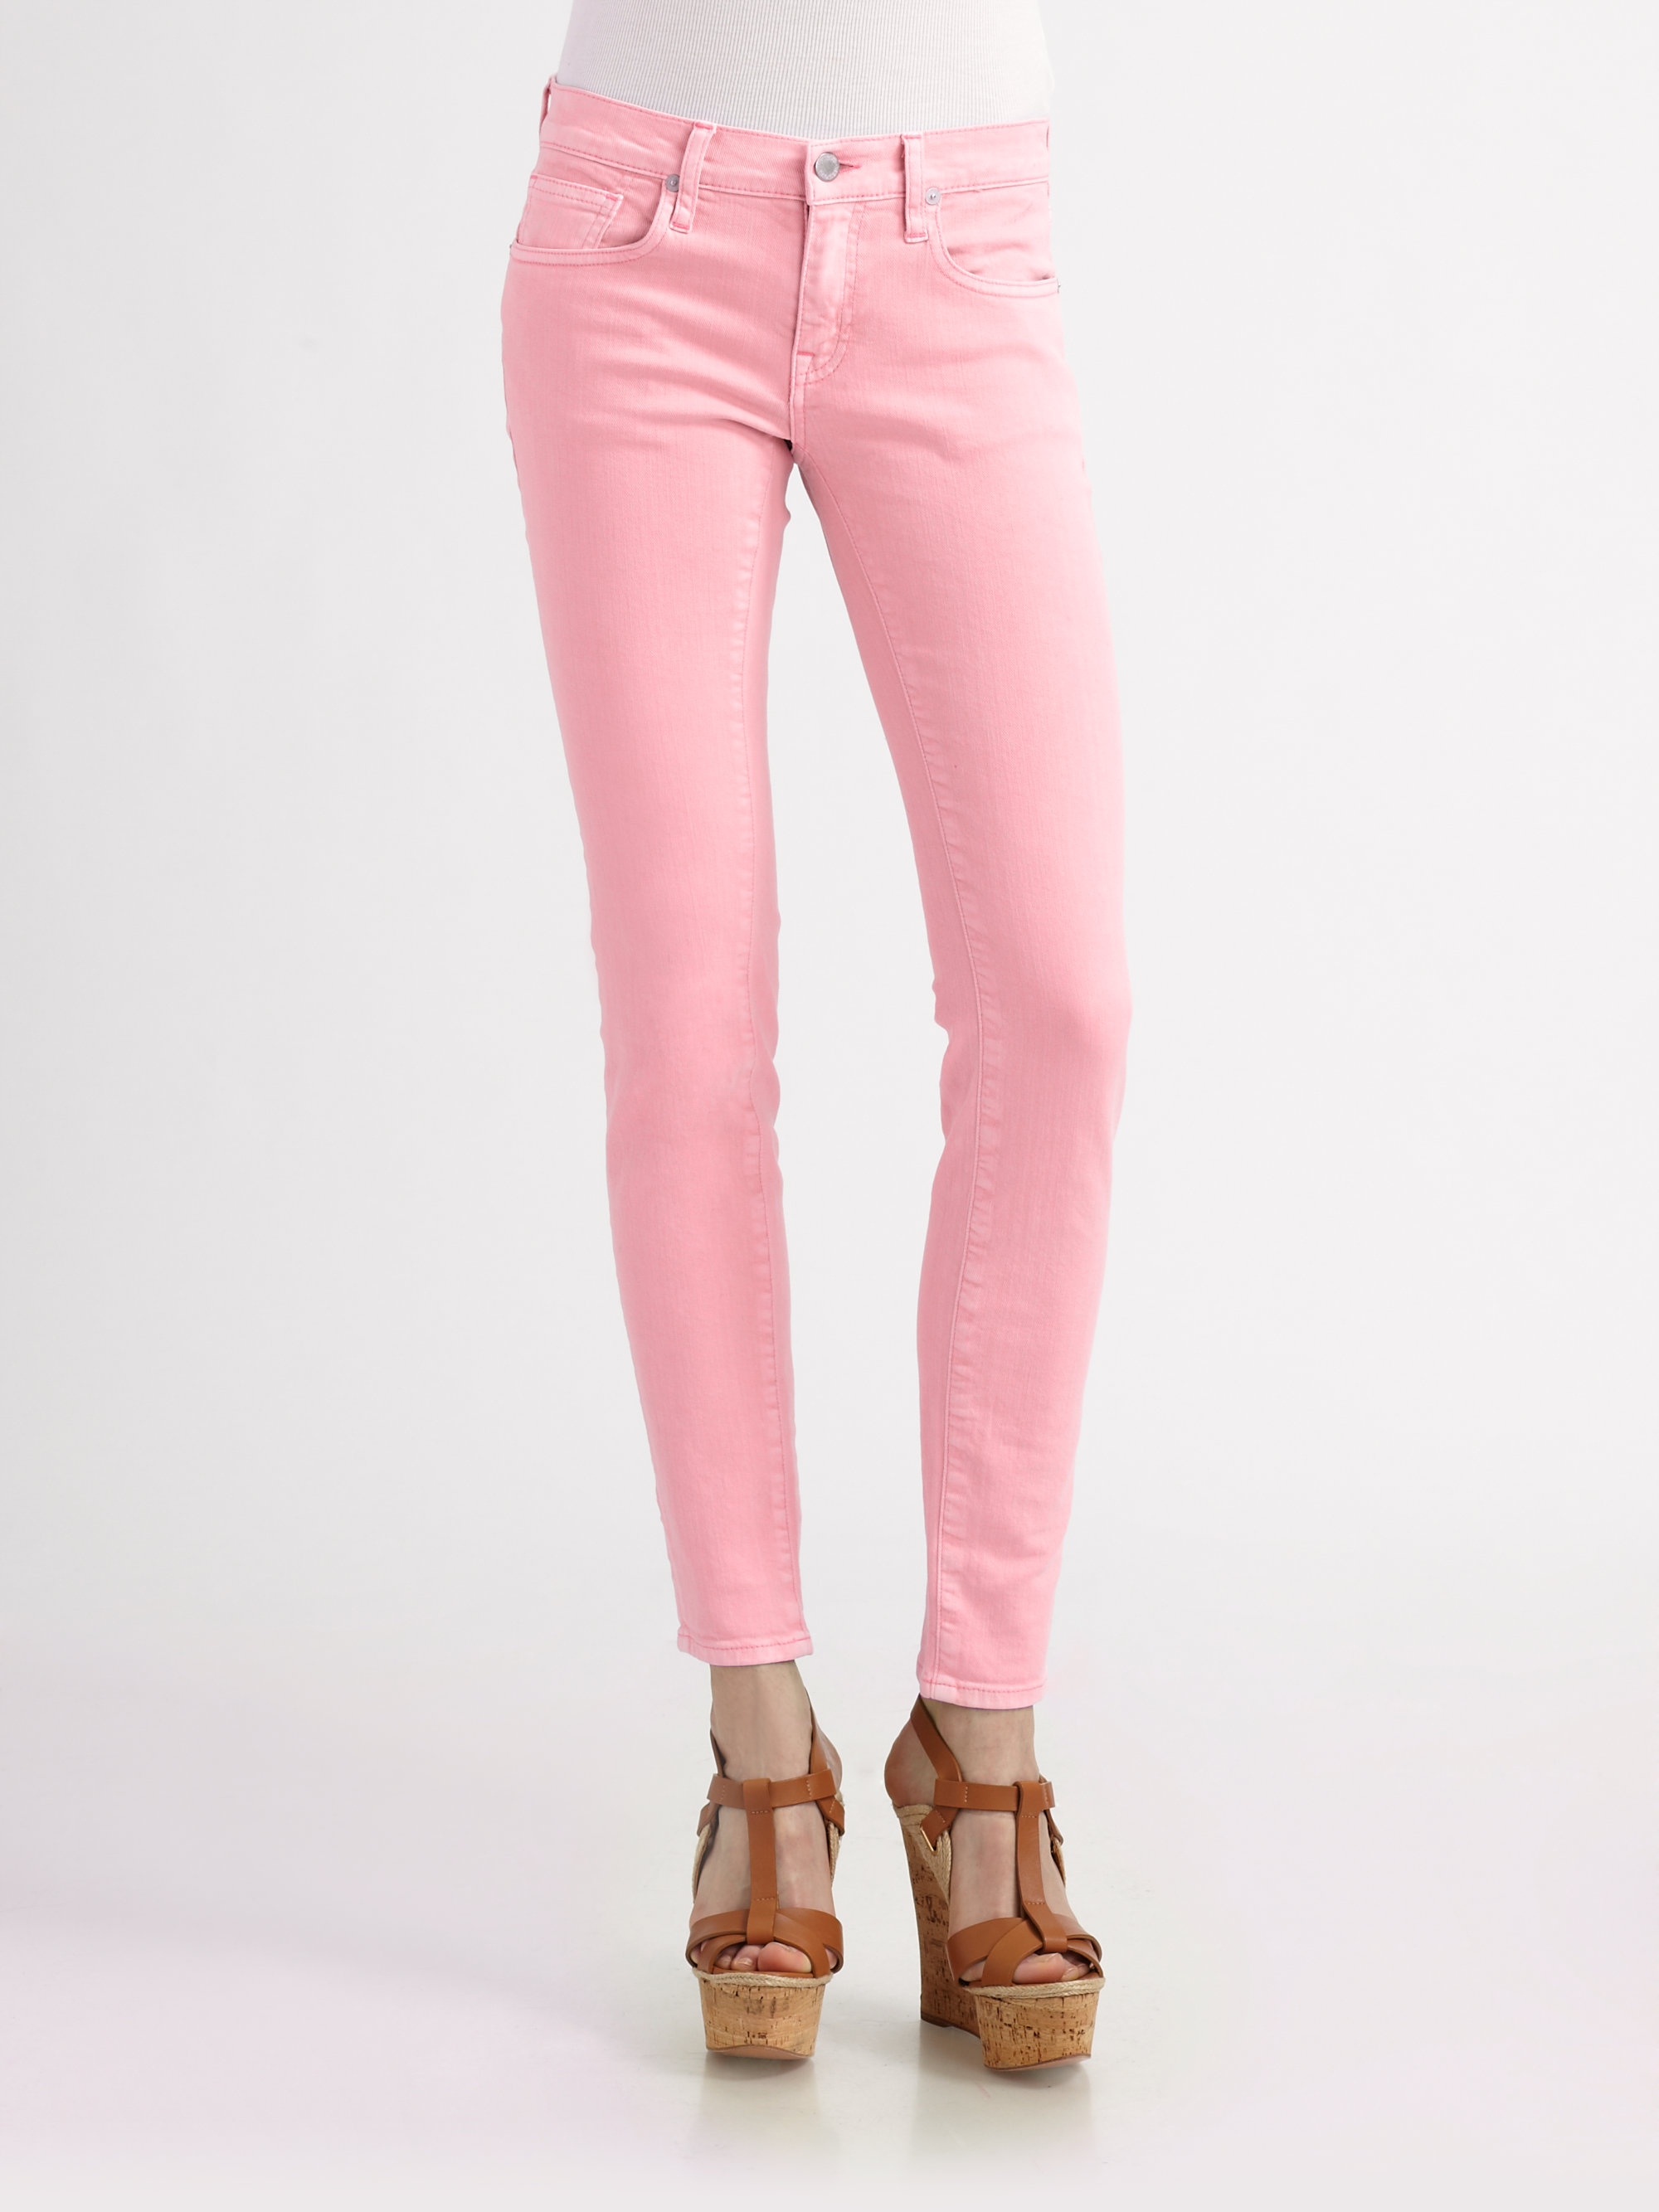 SHOPBOP - Distressed Jeans FASTEST FREE SHIPPING WORLDWIDE on Distressed Jeans & FREE EASY RETURNS.